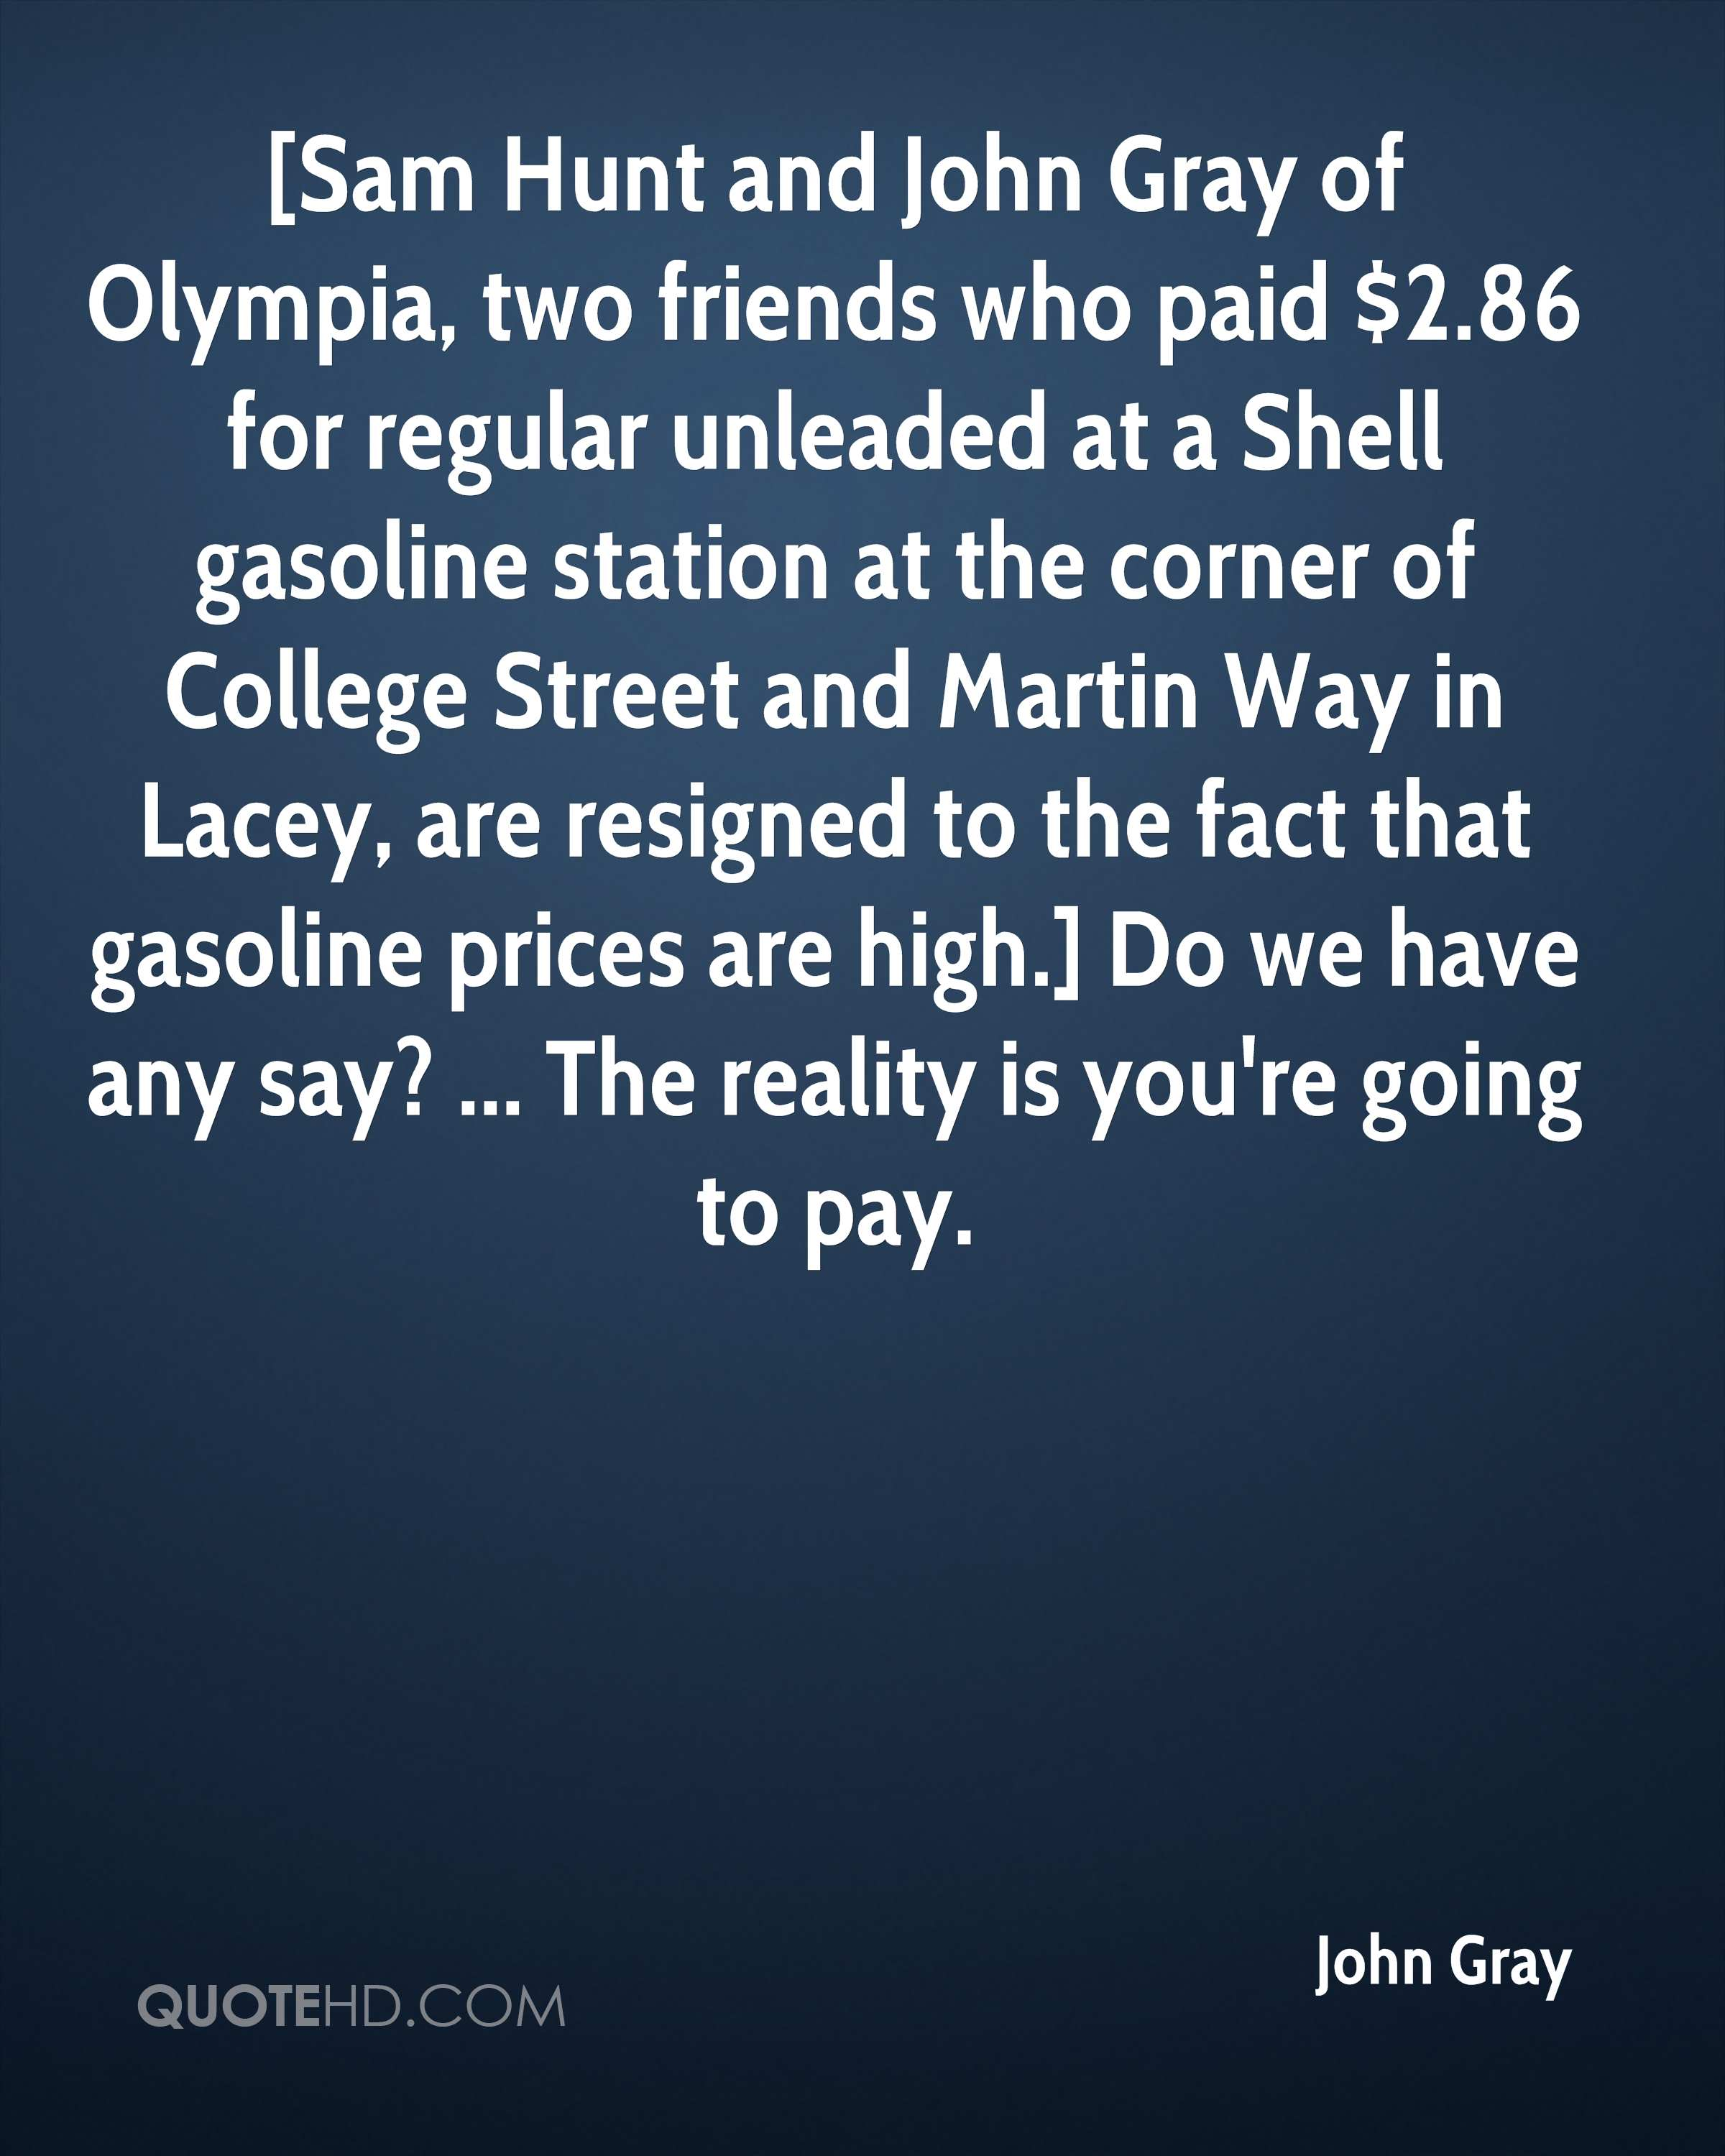 [Sam Hunt and John Gray of Olympia, two friends who paid $2.86 for regular unleaded at a Shell gasoline station at the corner of College Street and Martin Way in Lacey, are resigned to the fact that gasoline prices are high.] Do we have any say? ... The reality is you're going to pay.